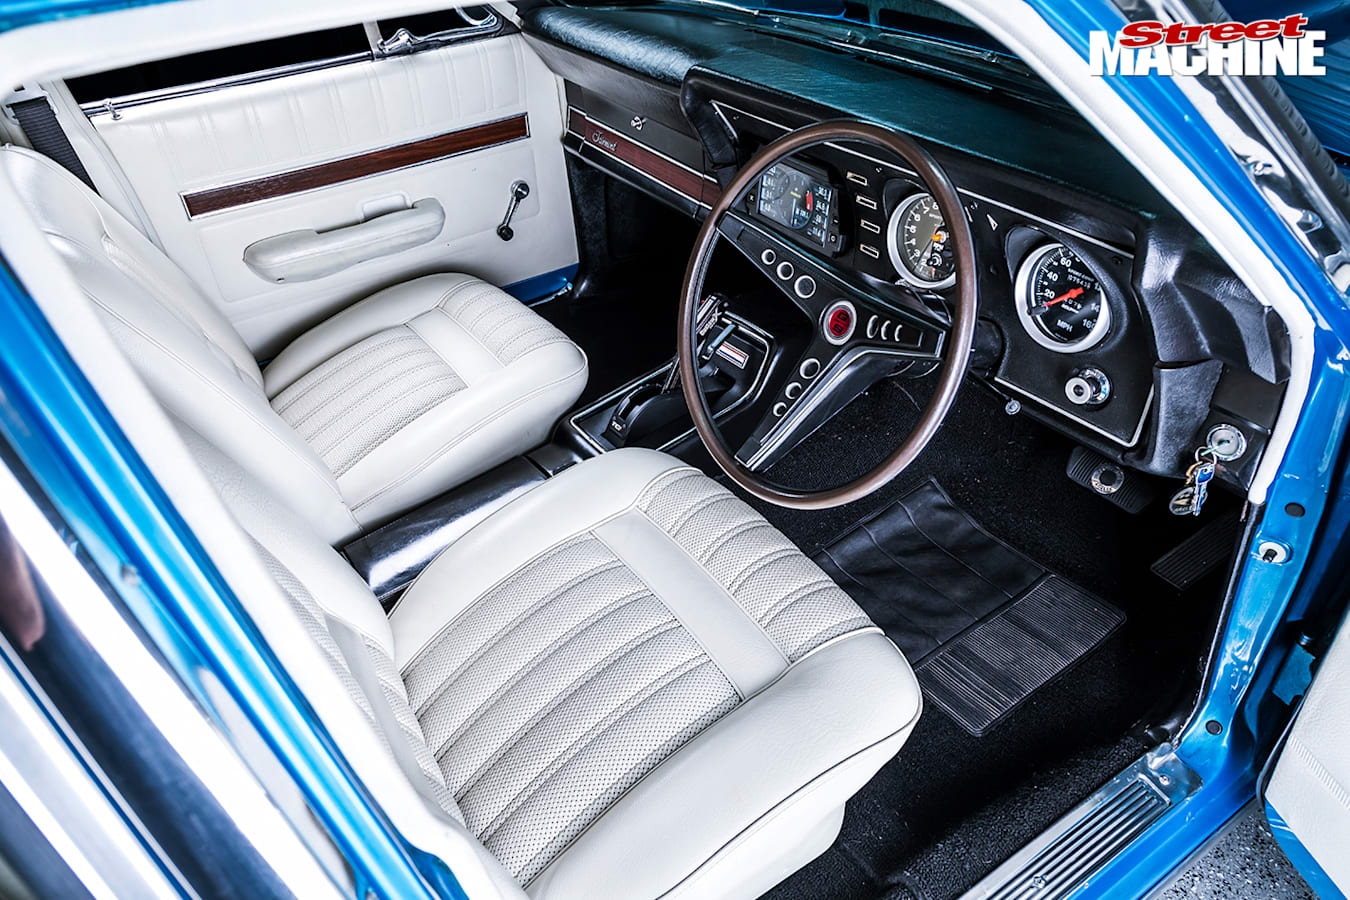 Street Machine Features Ford Falcon Xy Interior